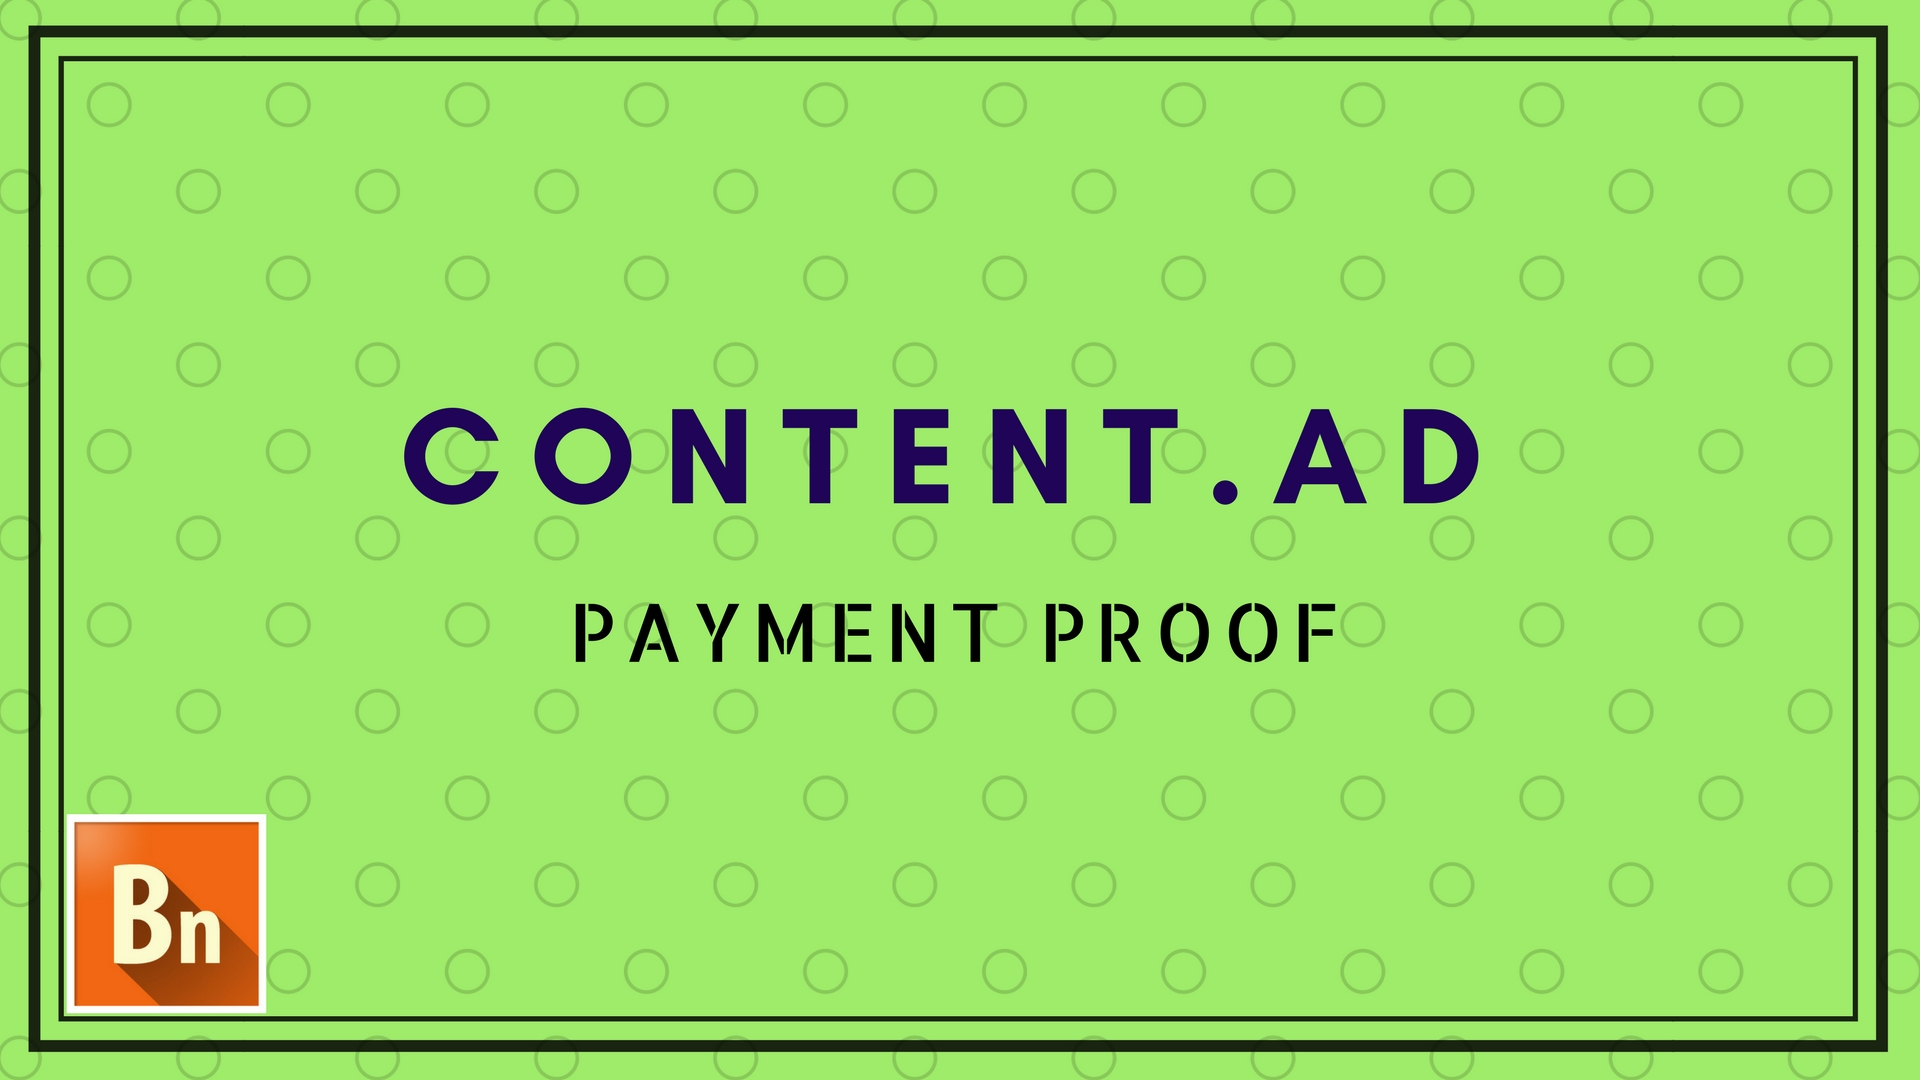 Content.Ad Payment Proof for Publishers 2020